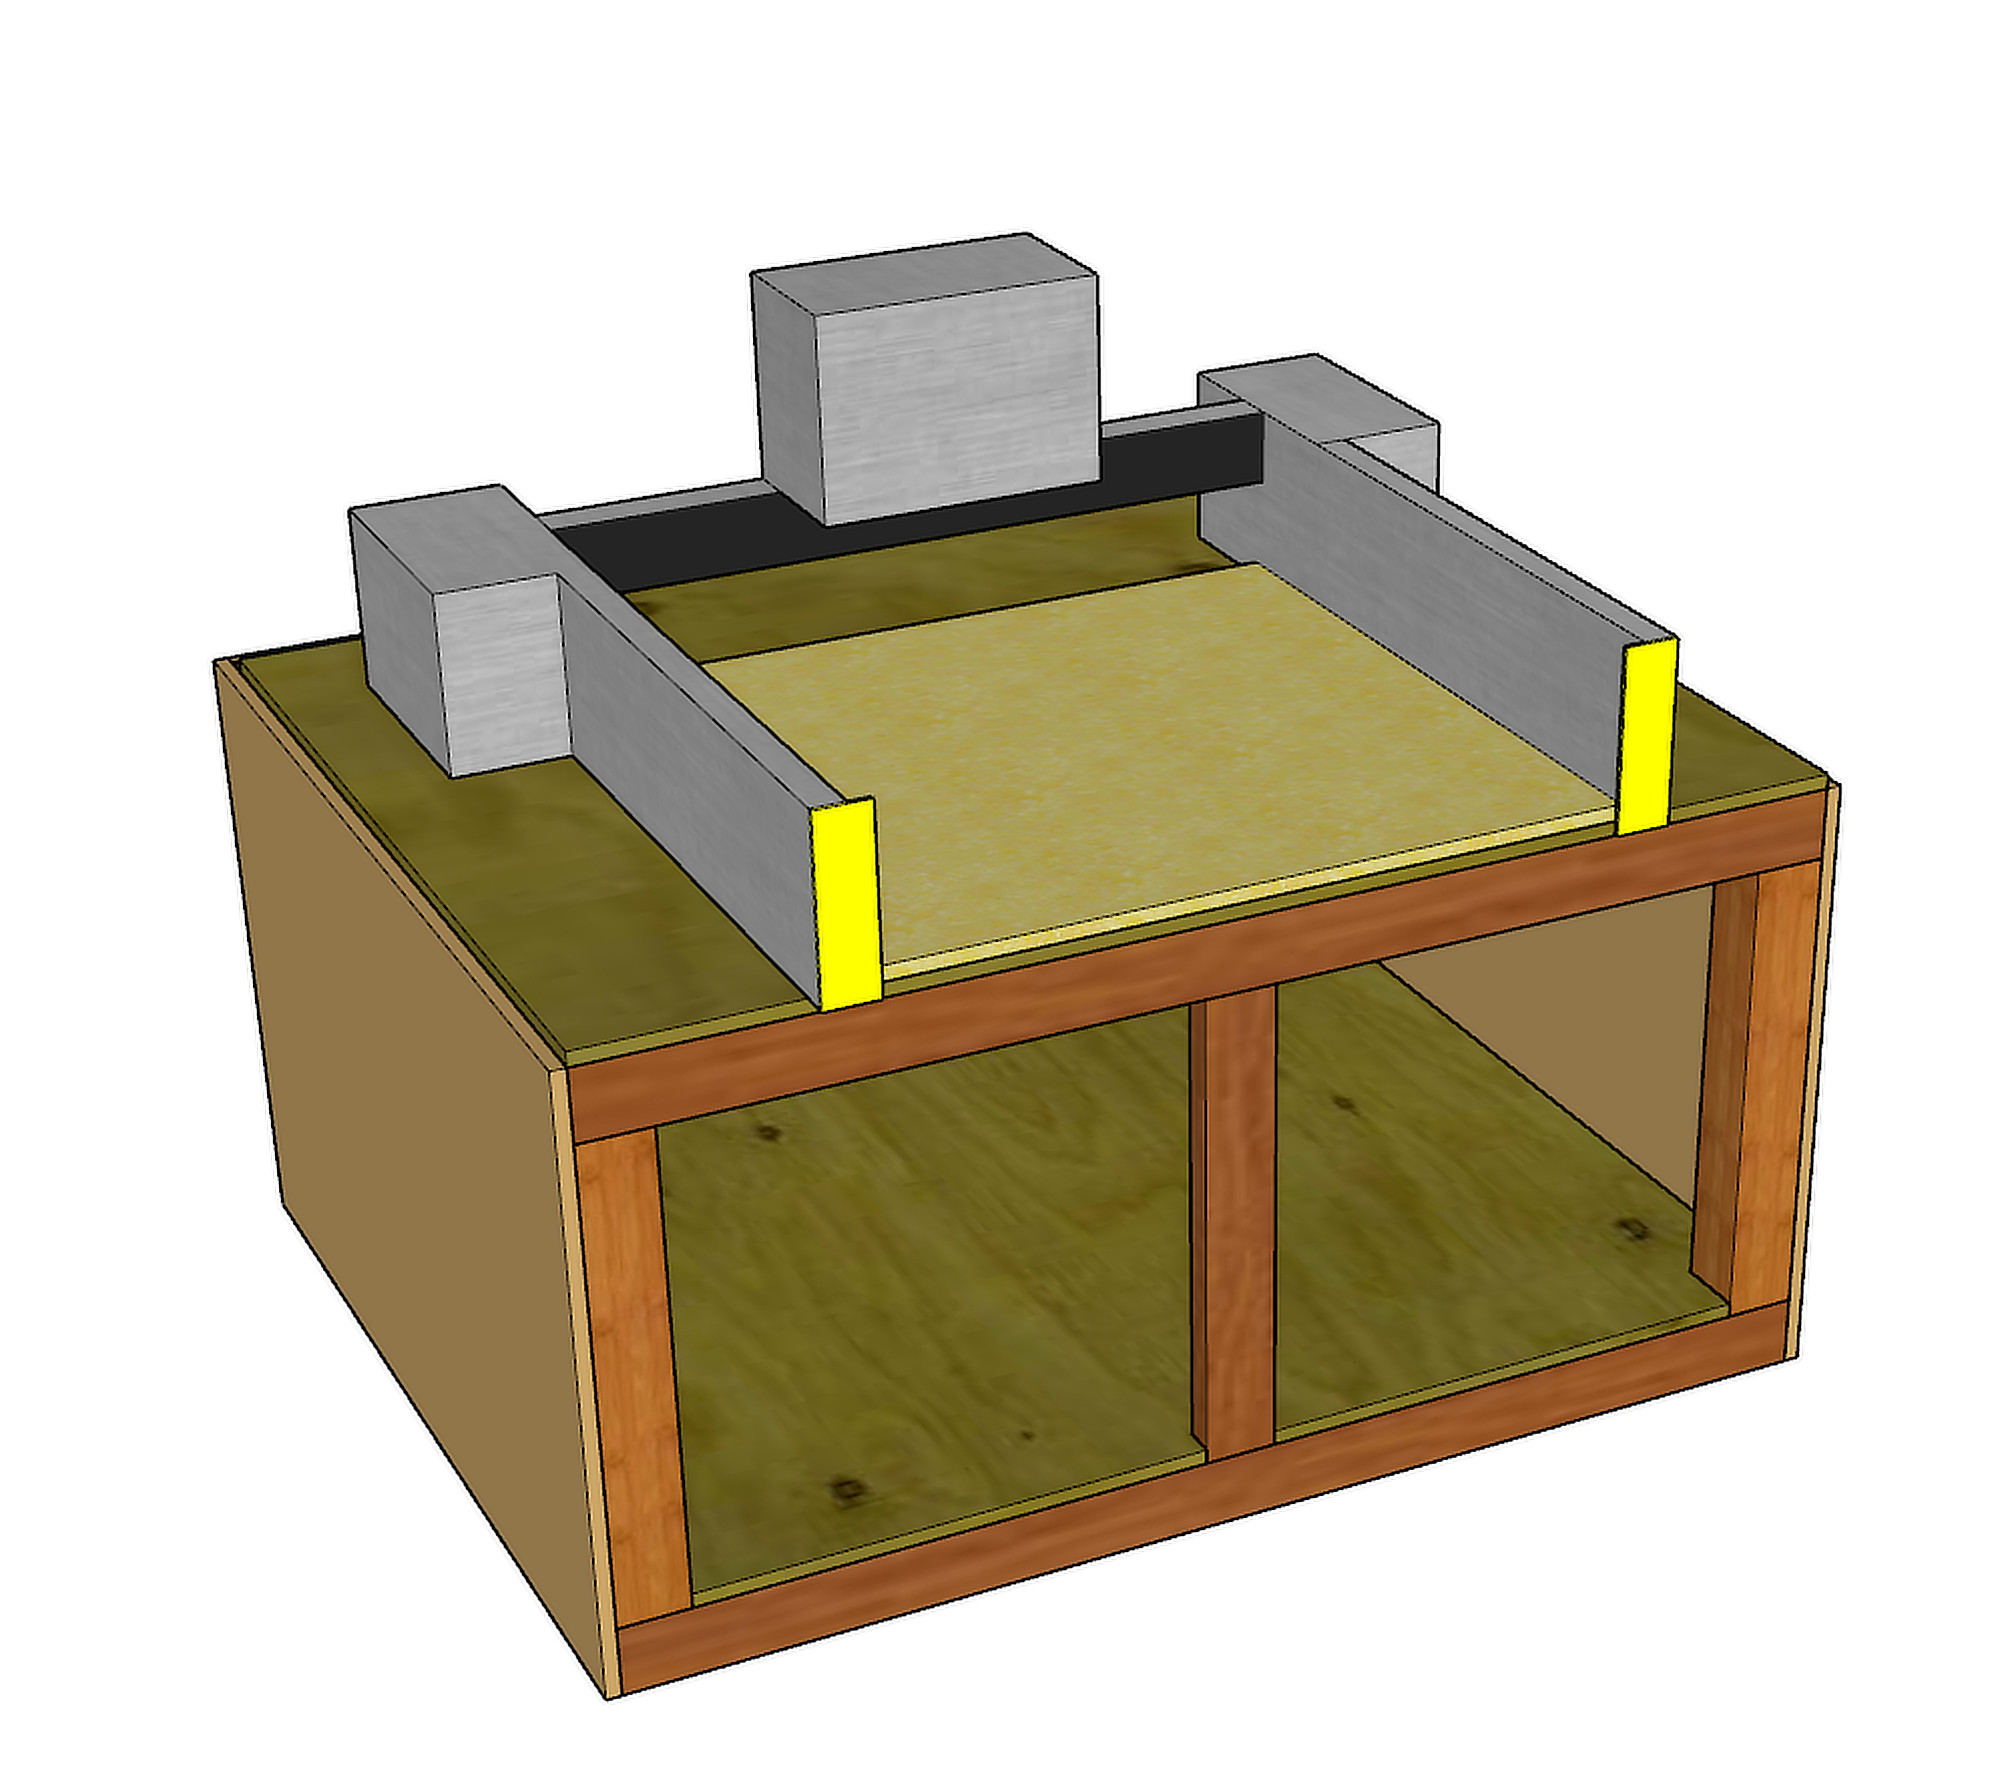 CNC table